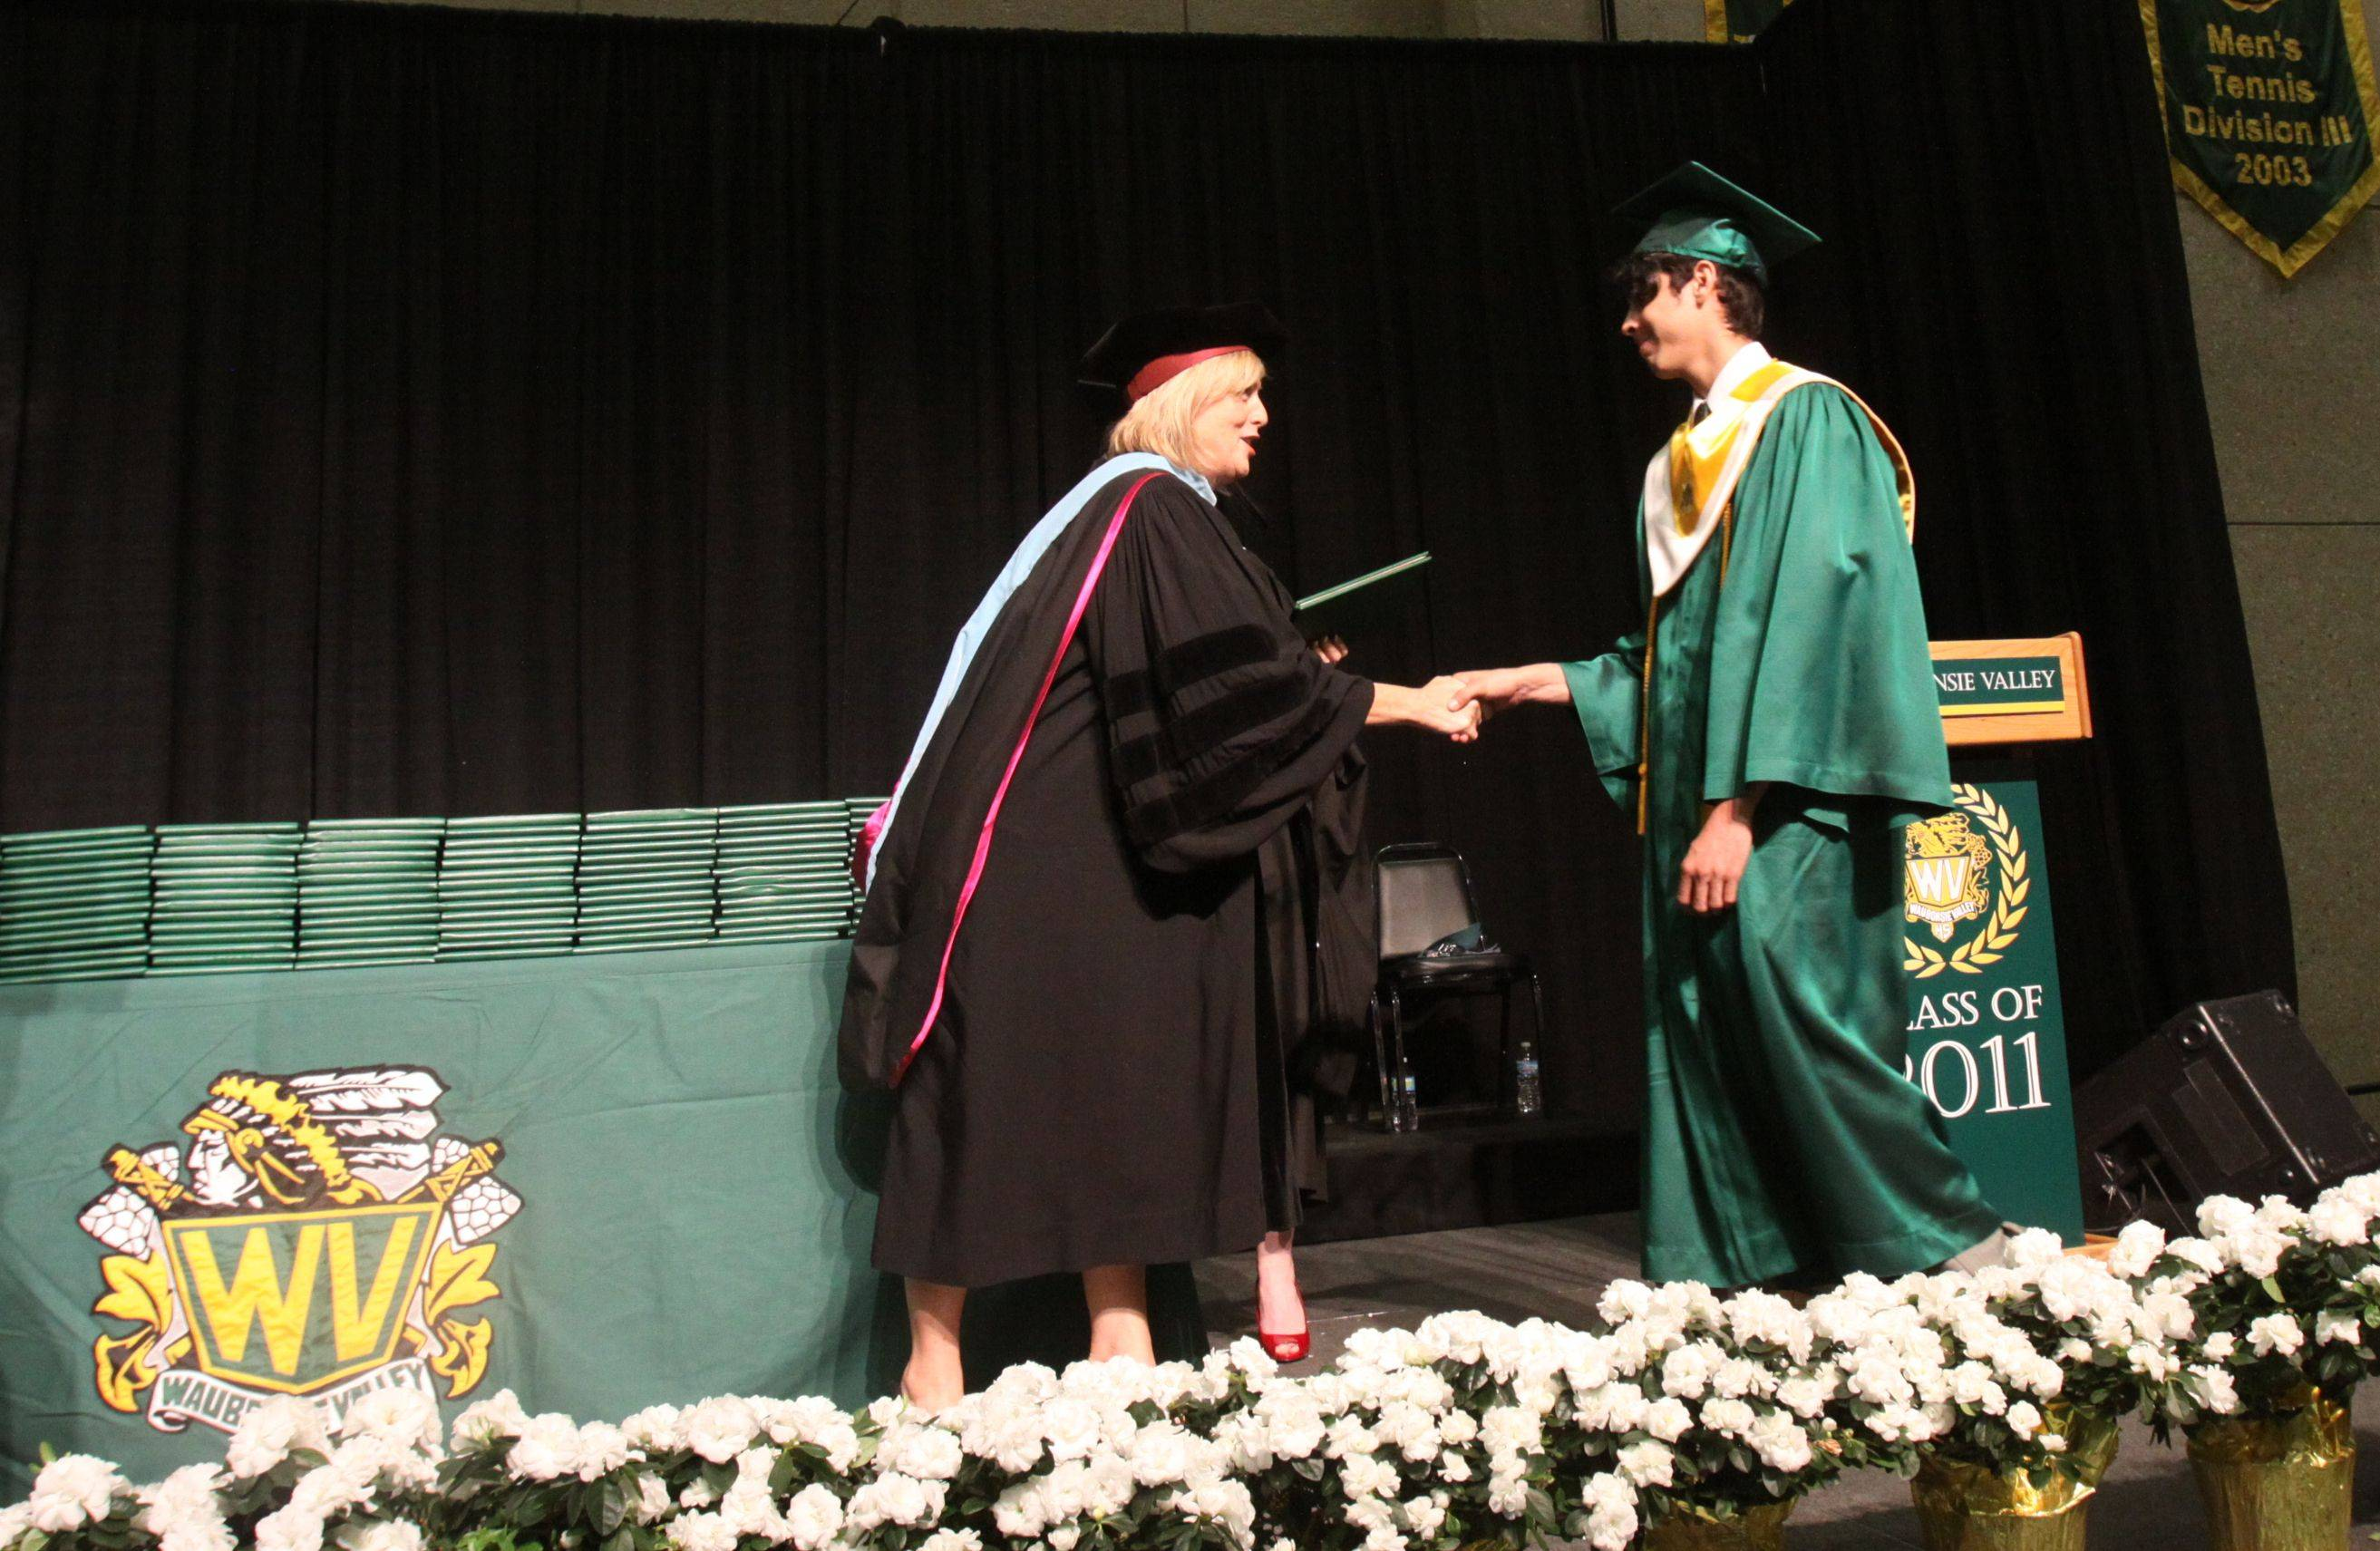 Images from the Waubonsie Valley High School graduation on Sunday, May 29th.